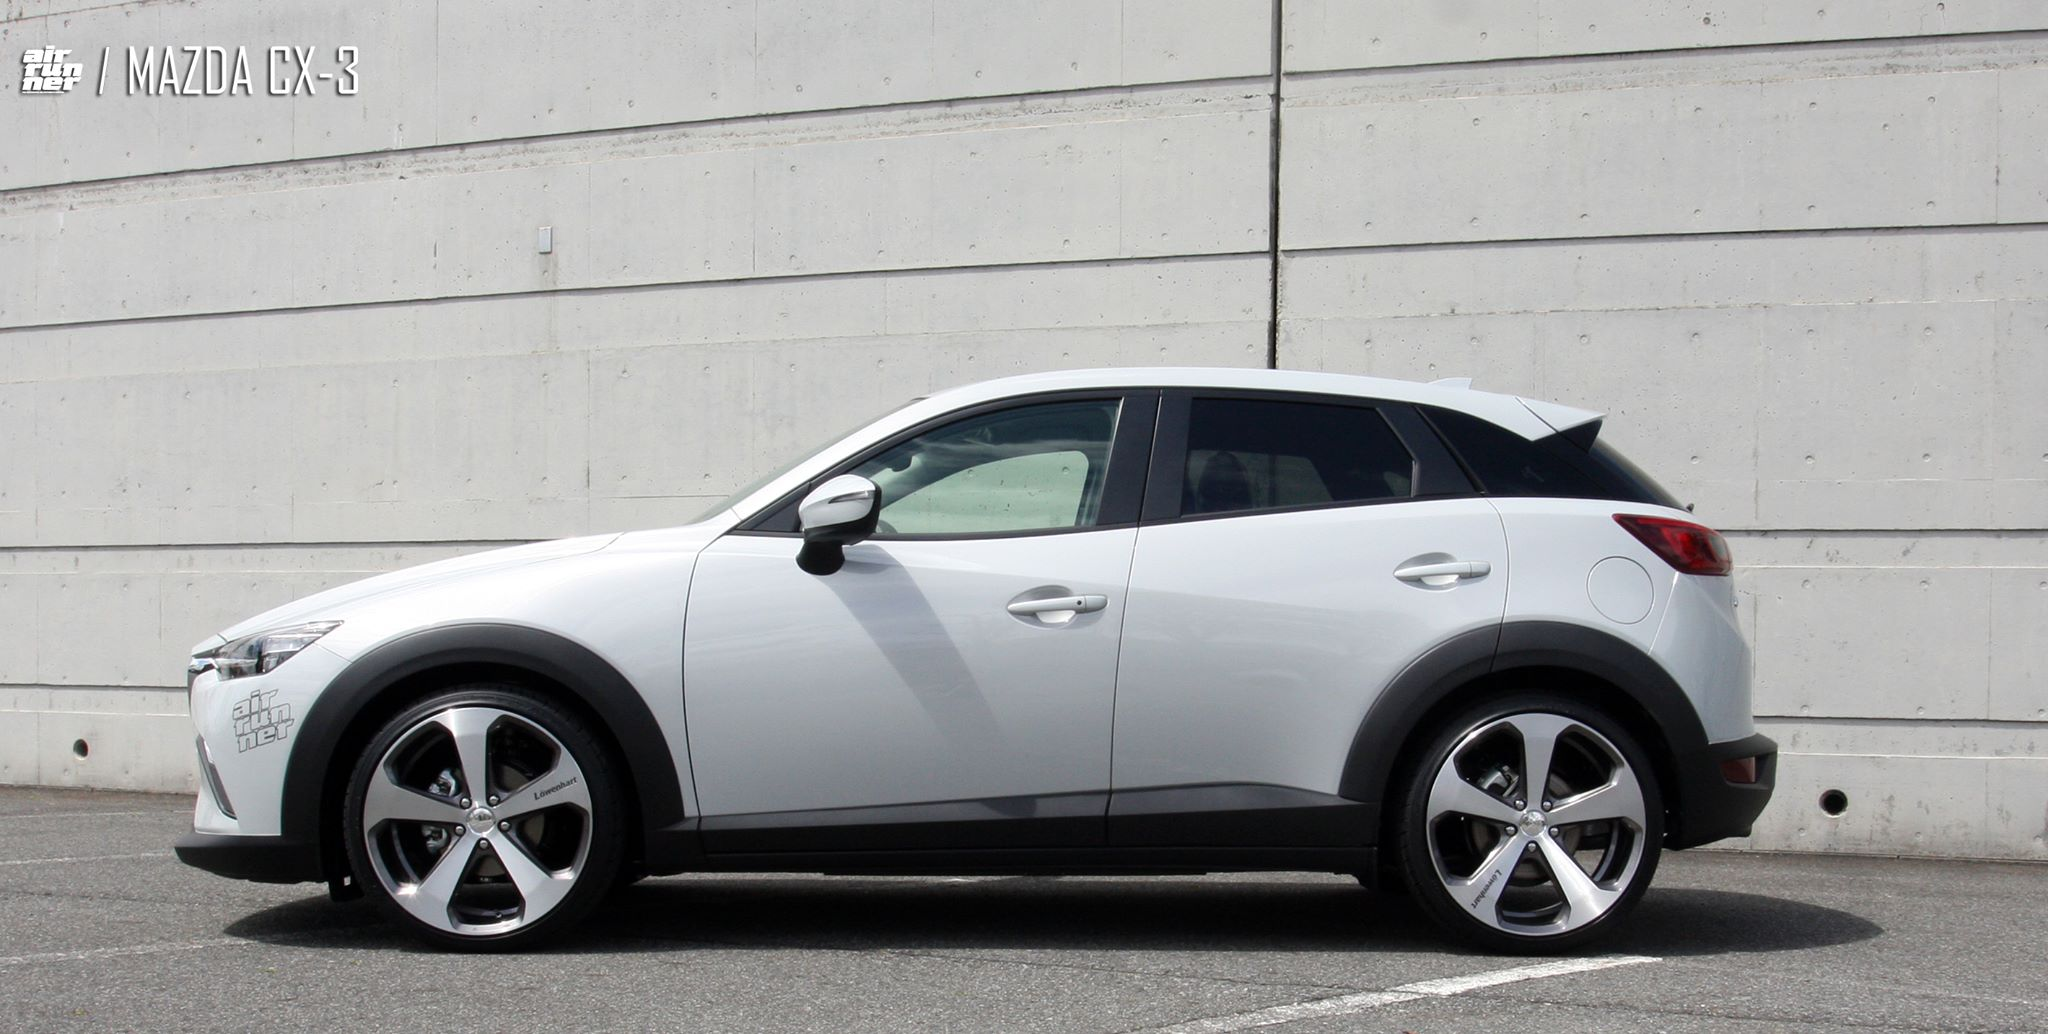 Lowered Cx 3 Air Runner On Lowenhart Lv5 Wheels Mazda Cx3 Forum